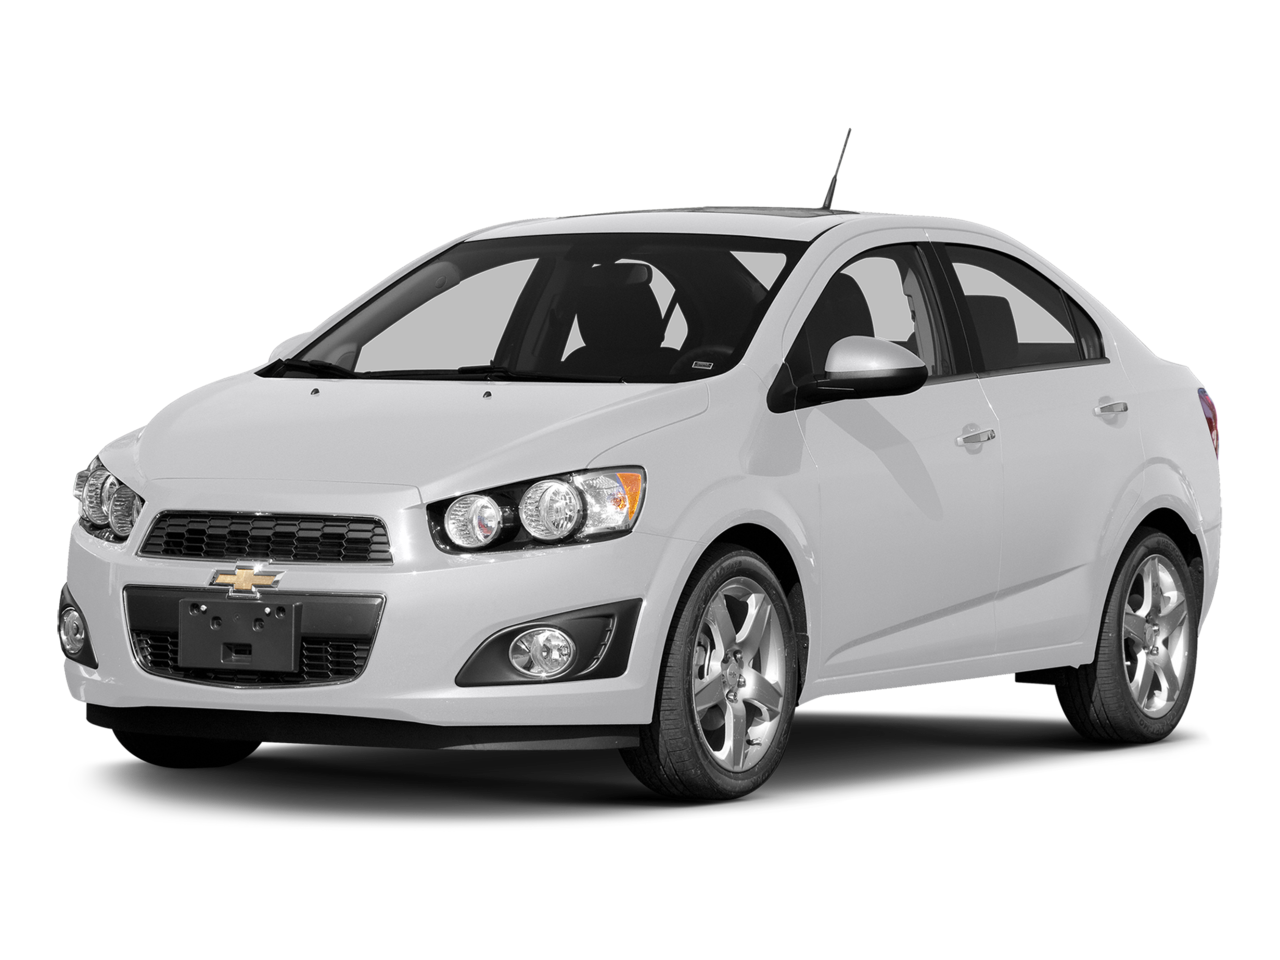 Tri County Chevrolet New Used Vehicles In Royston Near Athens